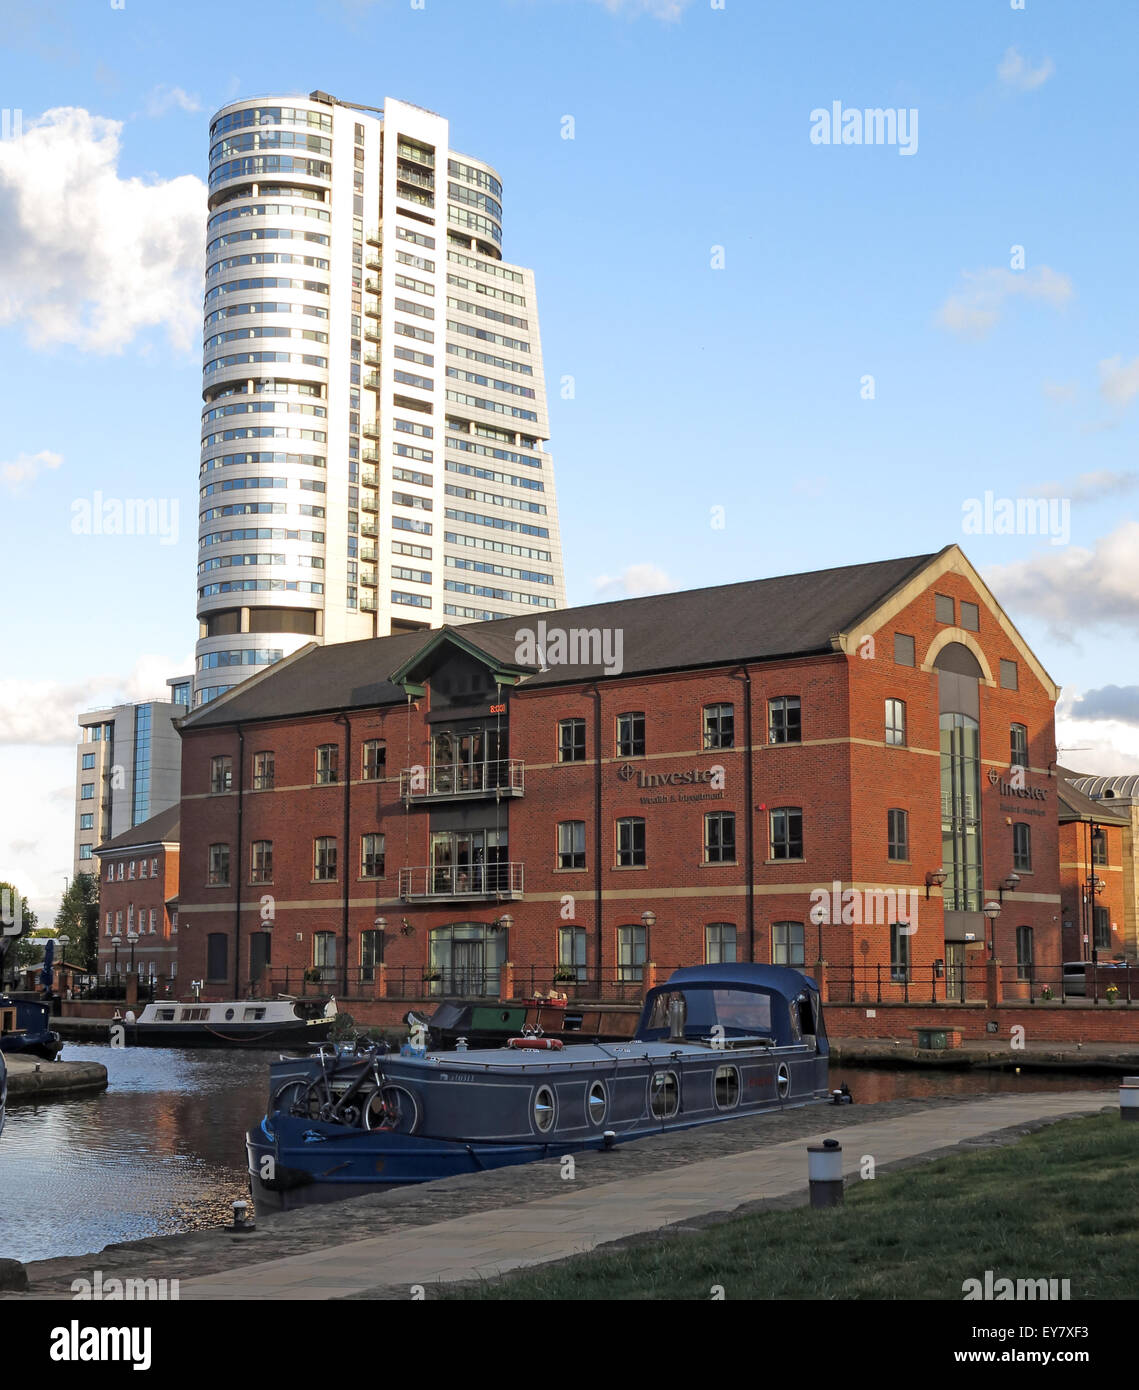 United Kingdom,UK,Liverpool,Canal,old,new,building,buildings,evening,sunshine,tourist,area,Granary,water,taxi,Armouries,Clarence,Dock,docks,workspace,cafe,eating,restaurant,boardwalk,pier,newdock,waterside,boat,boats,Leeds wharf,Wharf lock,Great Britain,Leeds Liverpool Canal,Granary Wharf,GoTonySmith,barge,housebarges,leads,Buy Pictures of,Buy Images Of,house barge